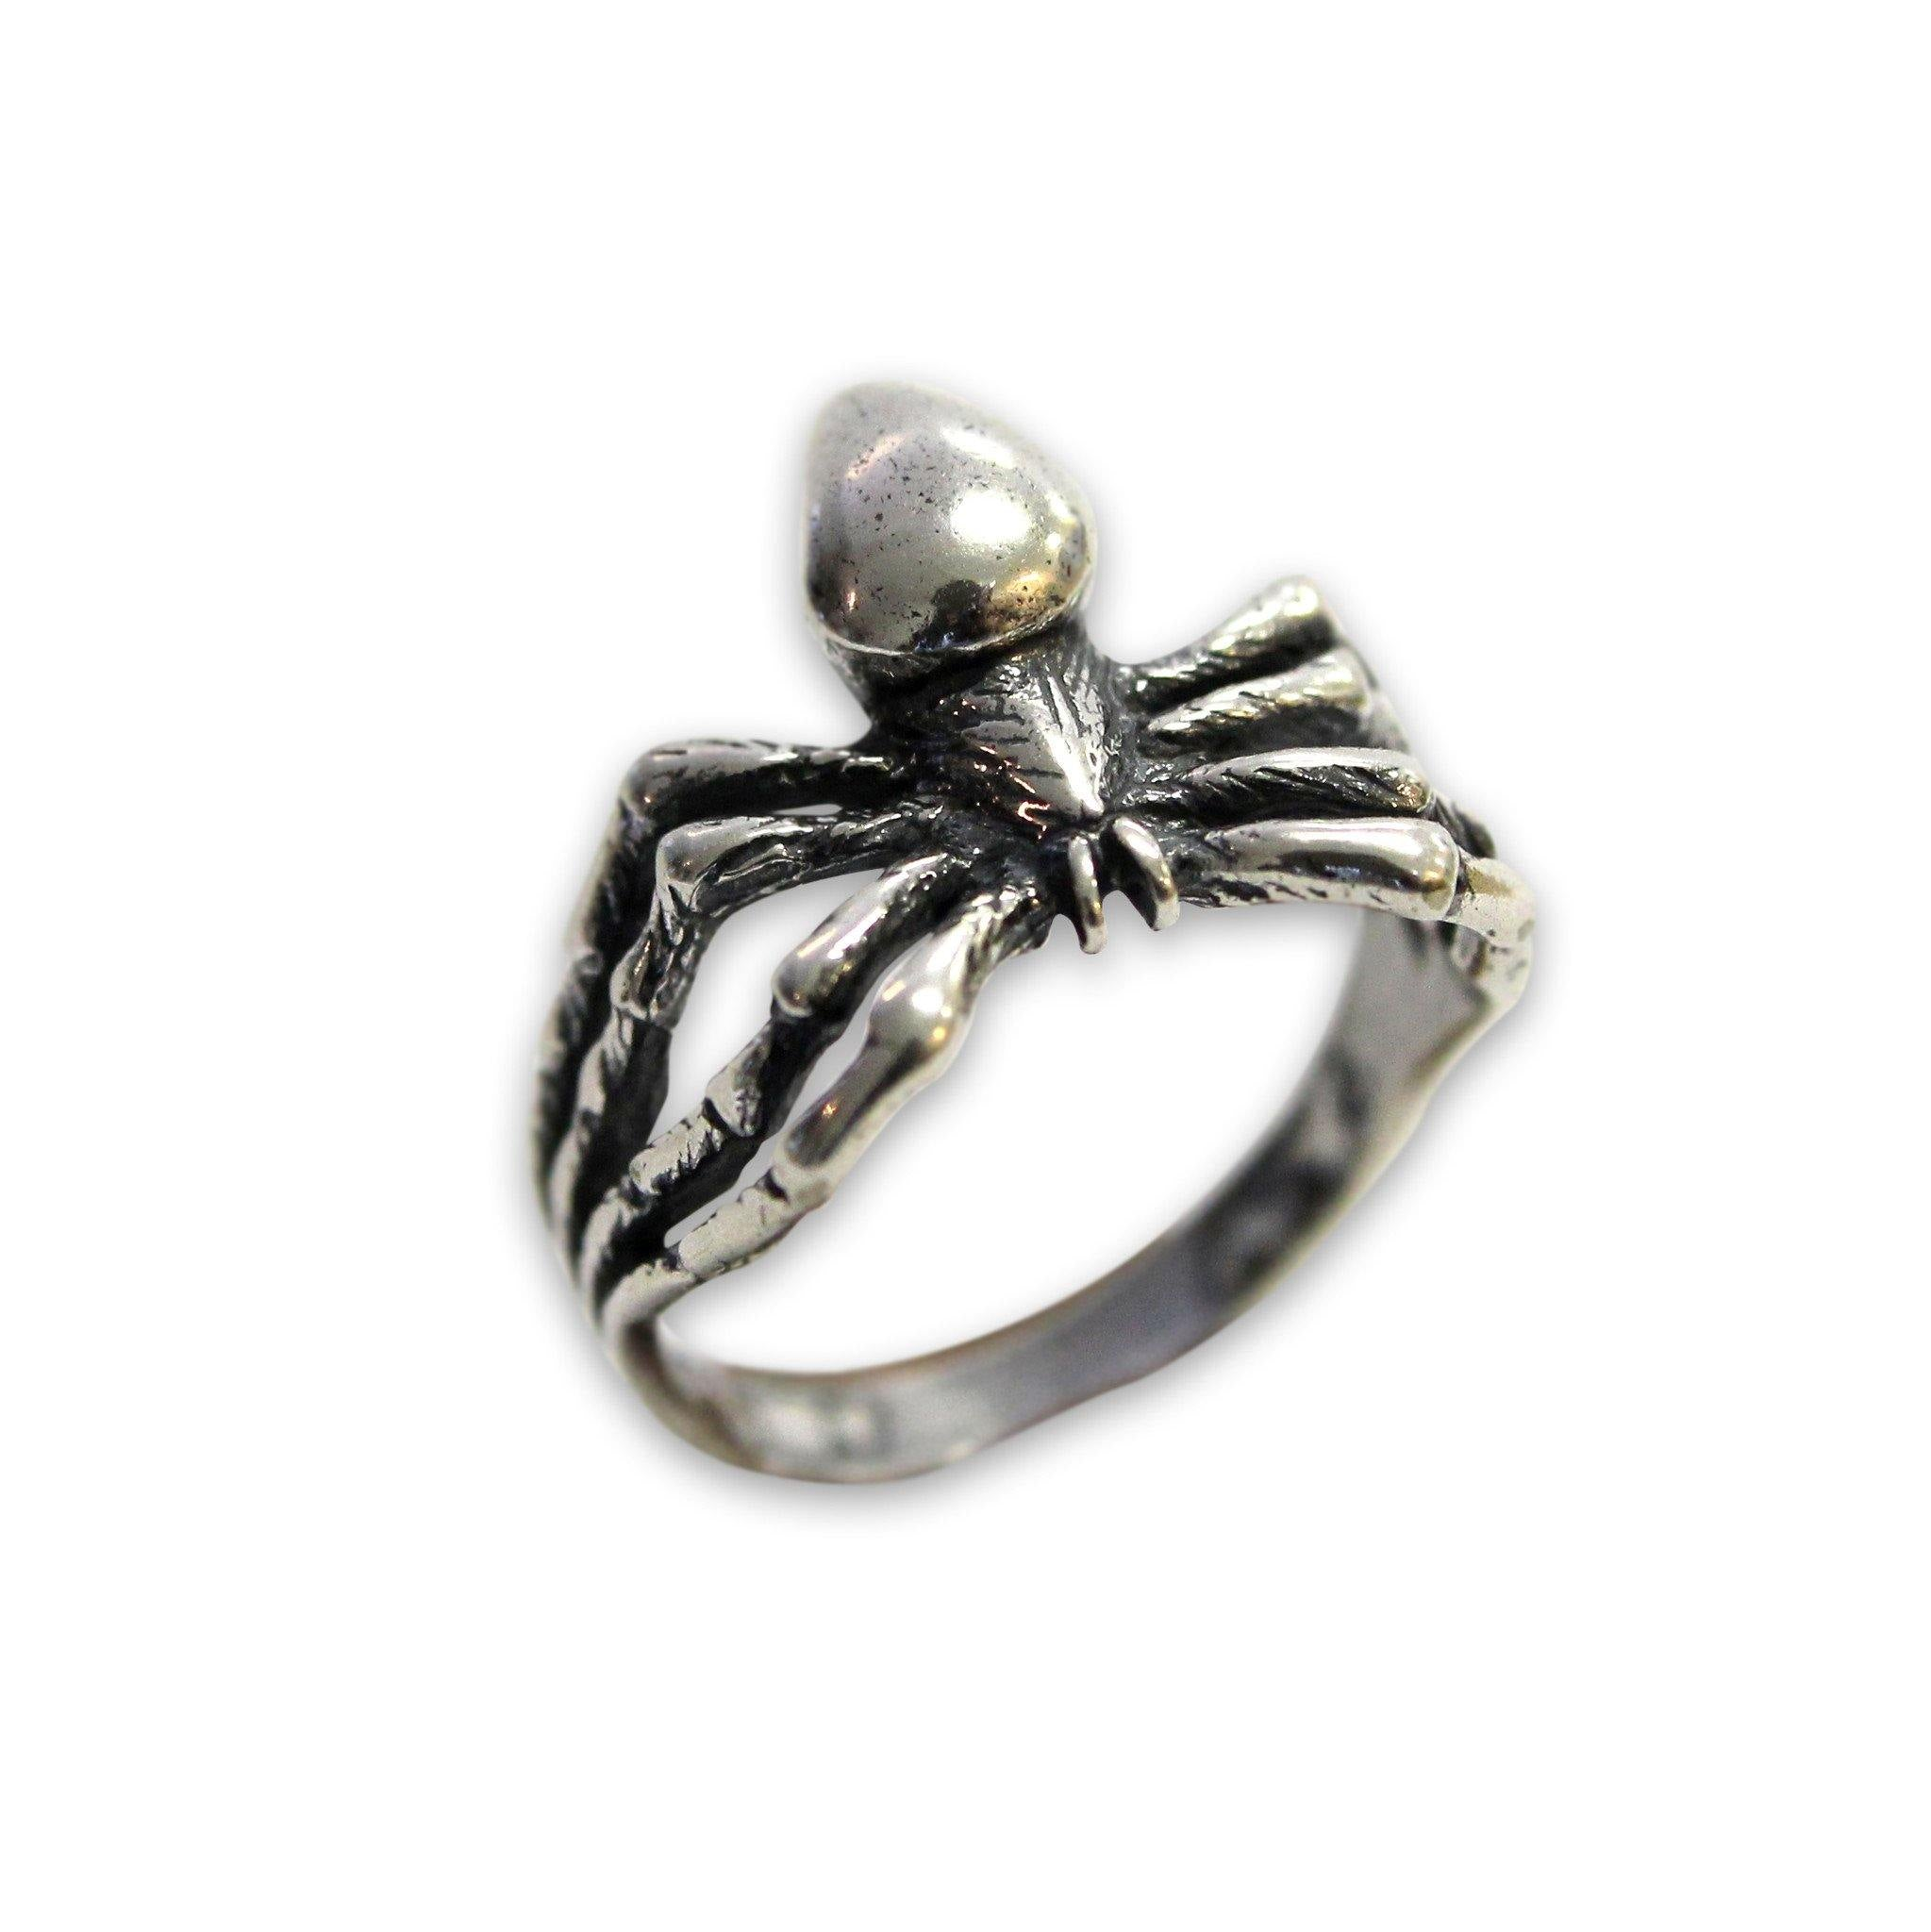 Spider Ring - Moon Raven Designs